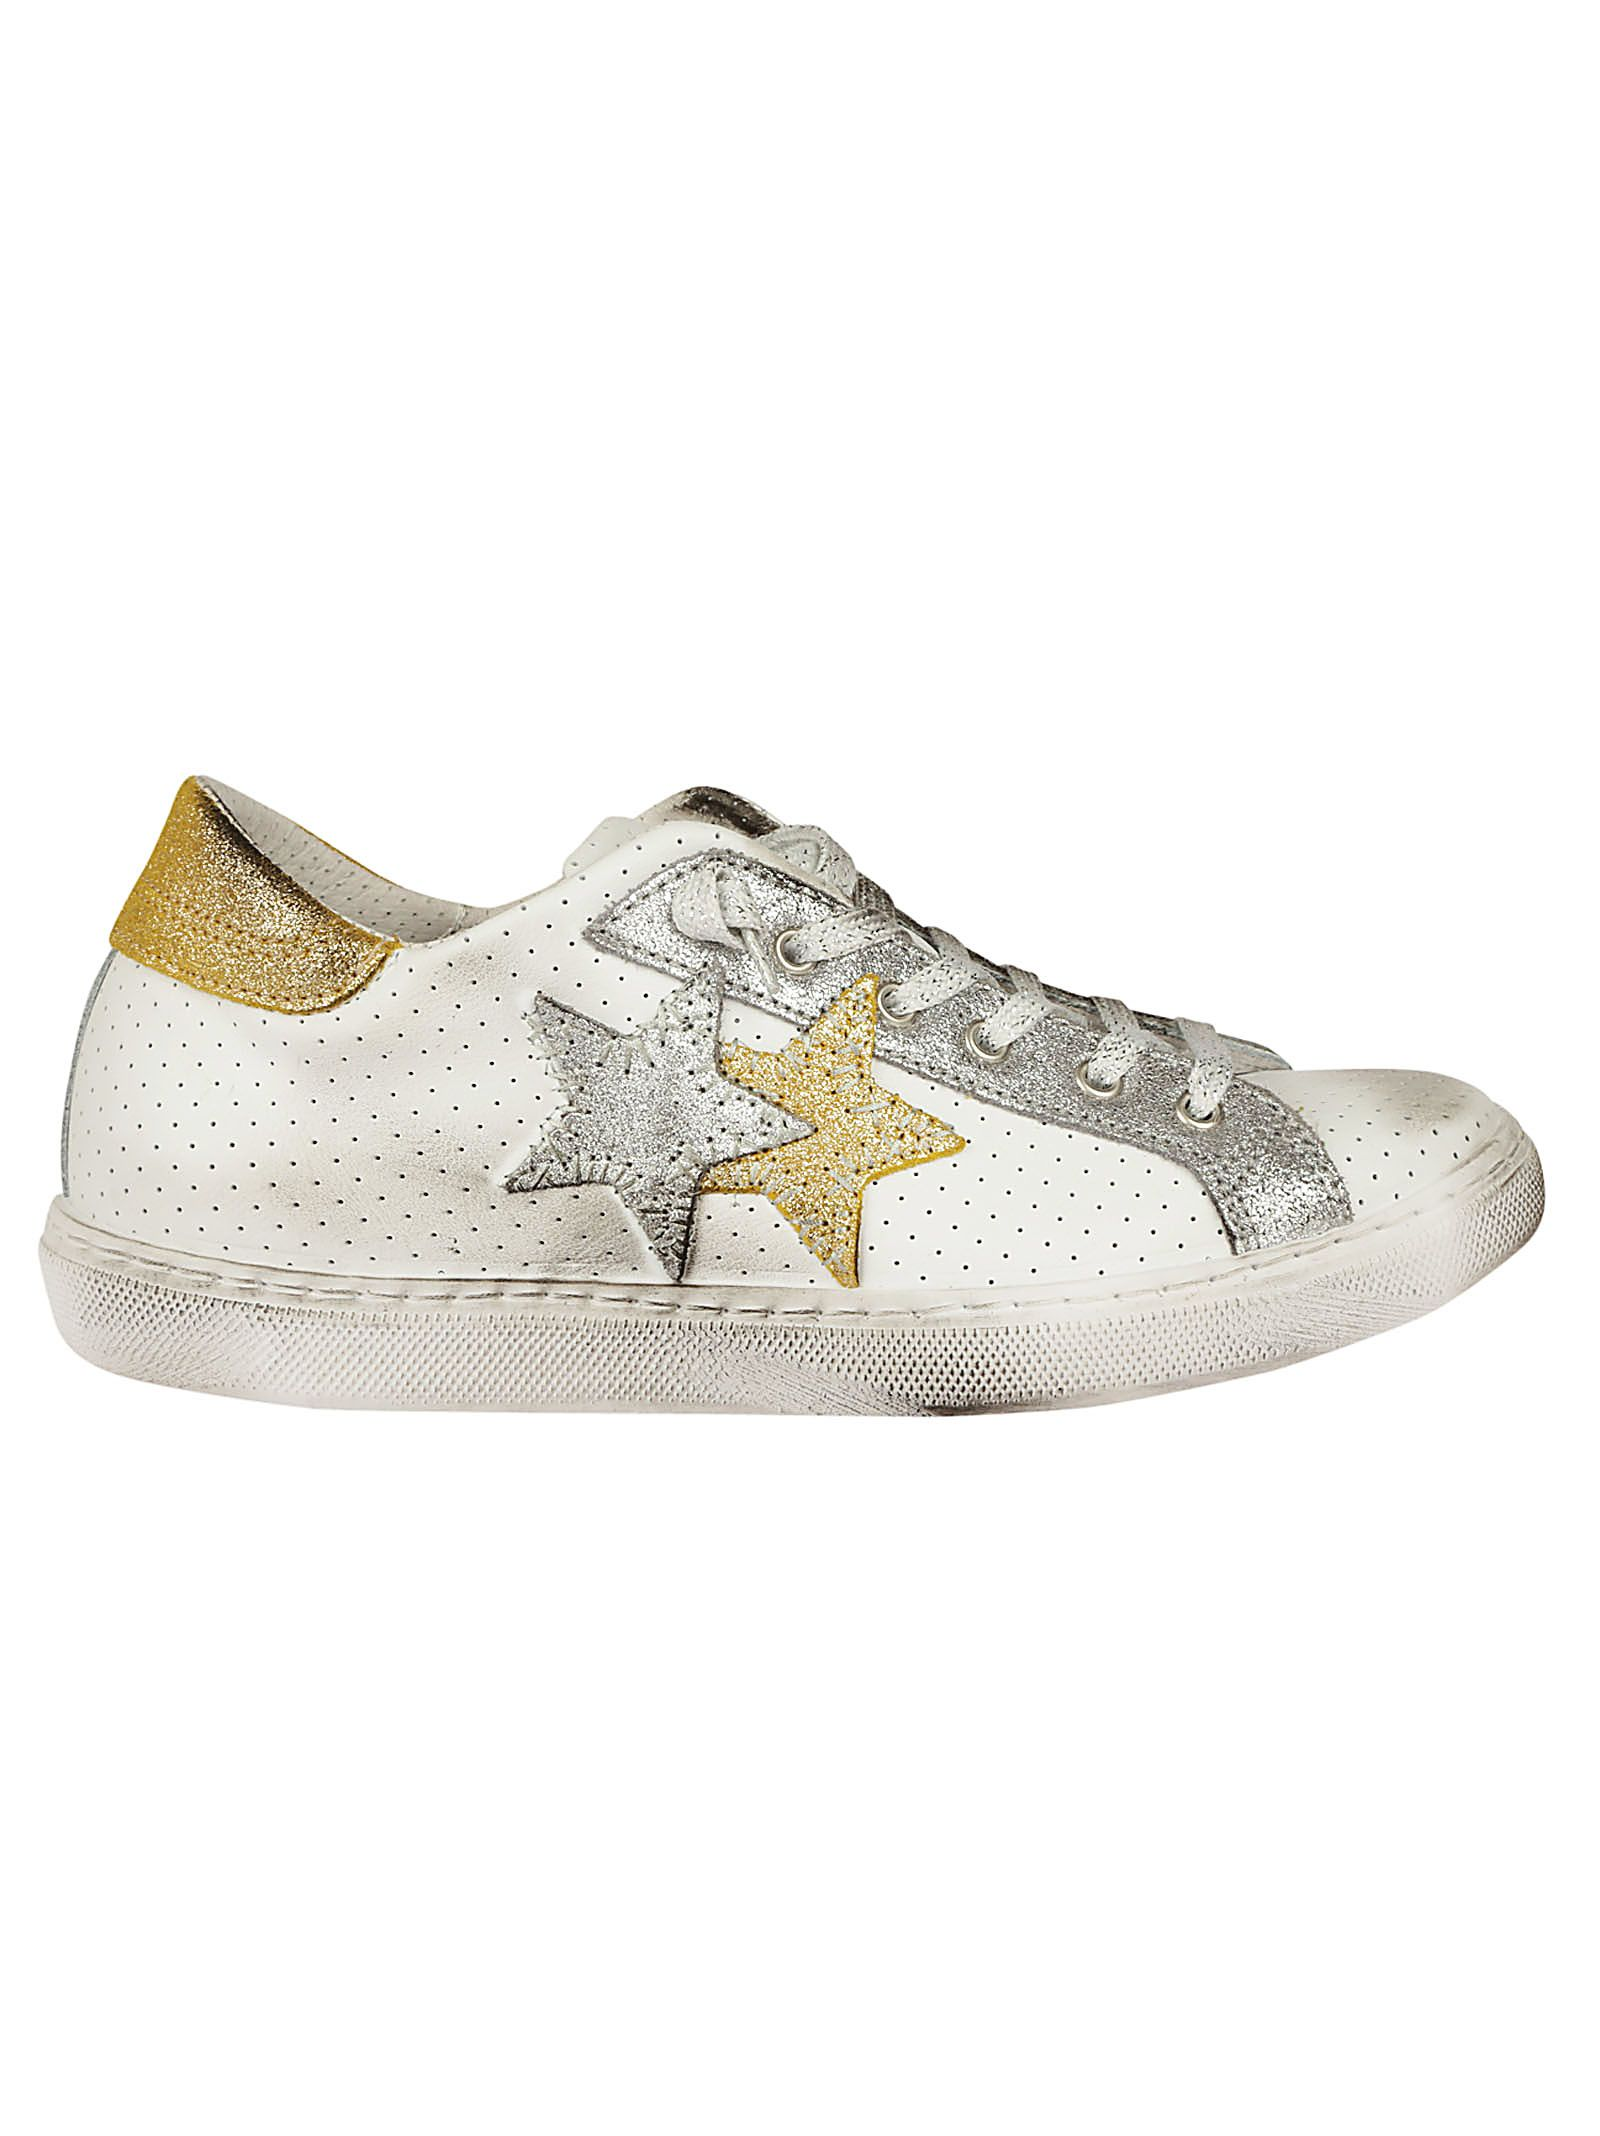 2star female 2star perforated sneakers